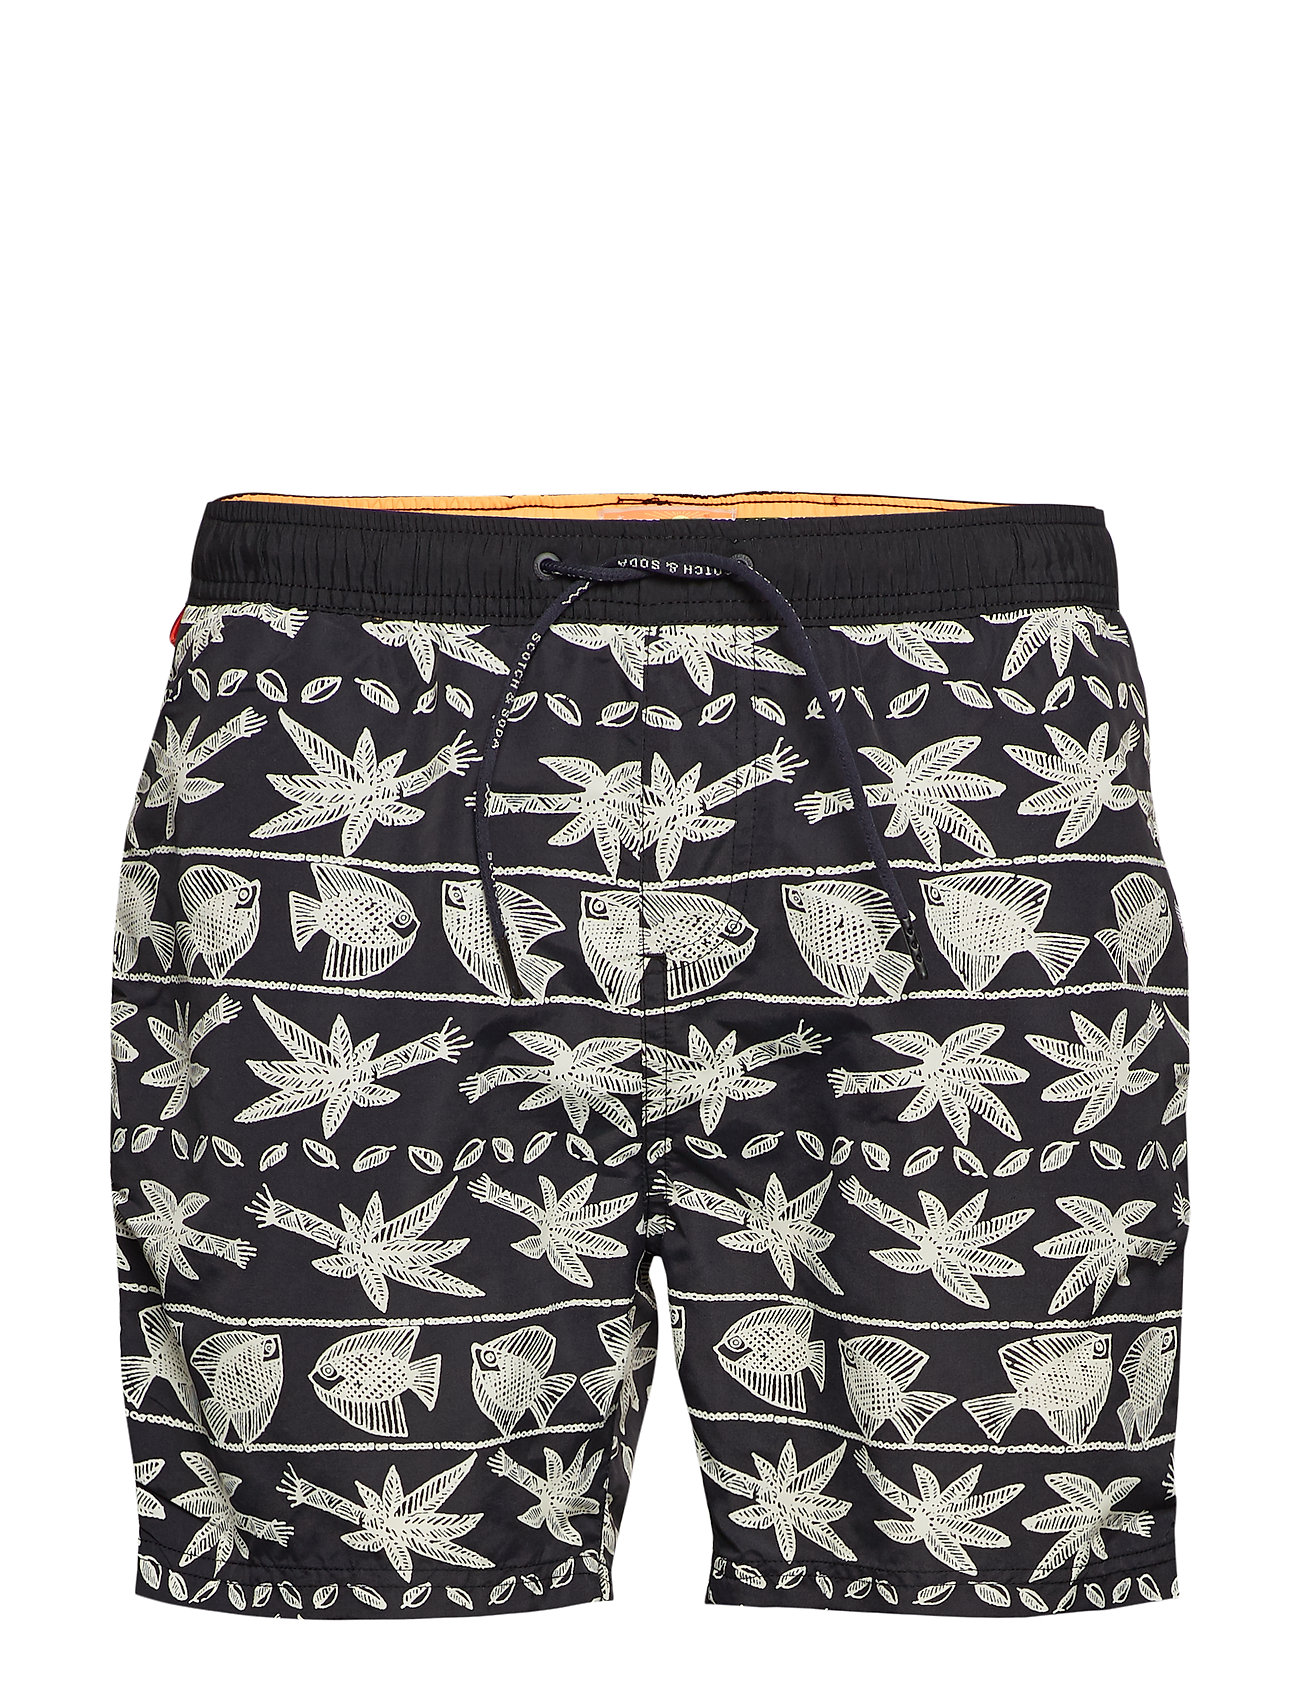 Scotch & Soda Classic swimshort with summer all-over print - COMBO D